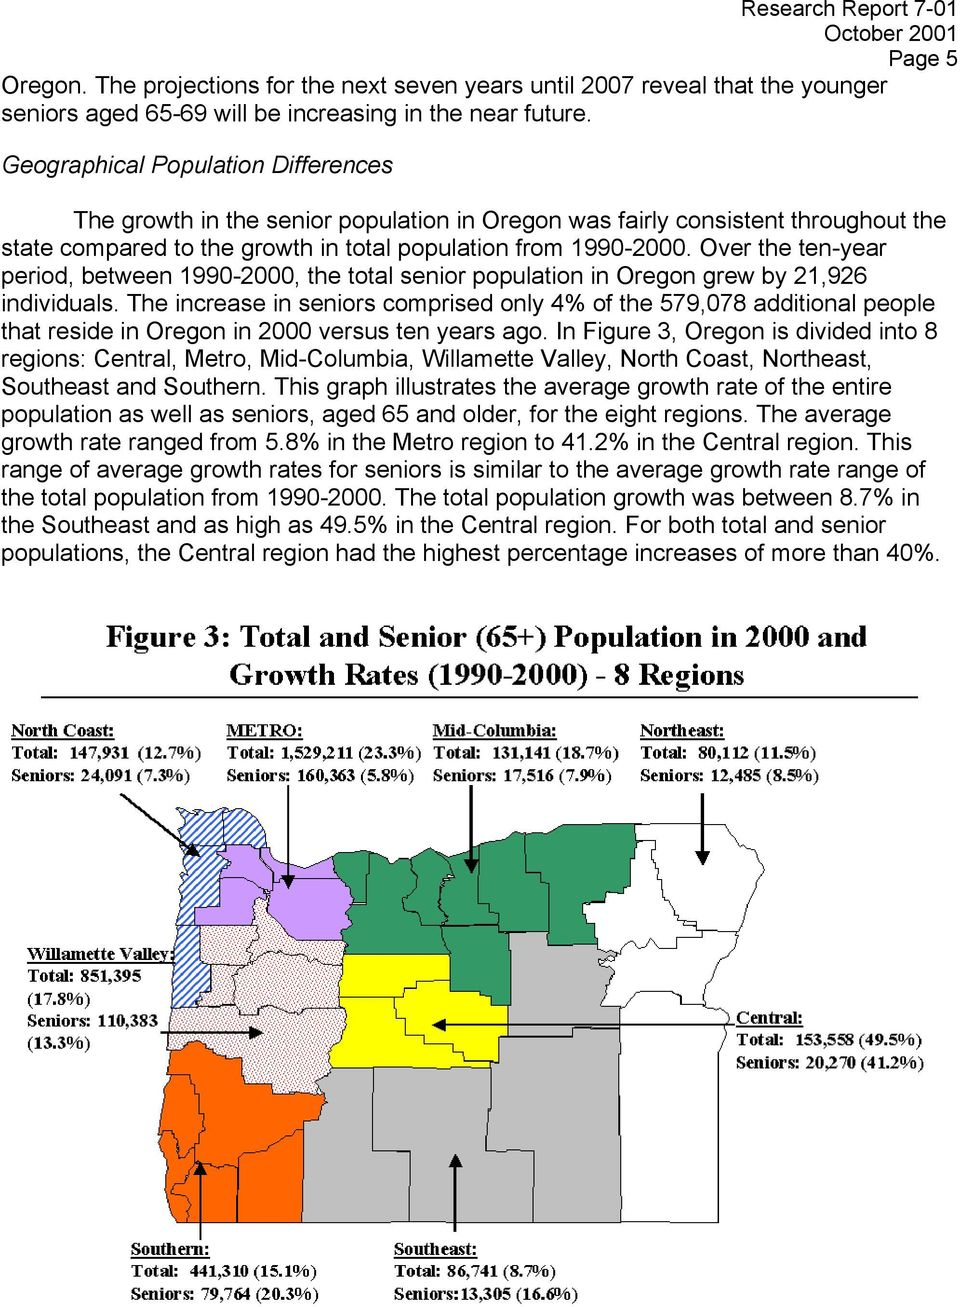 Over the ten-year period, between 1990-2000, the total senior population in Oregon grew by 21,926 individuals.